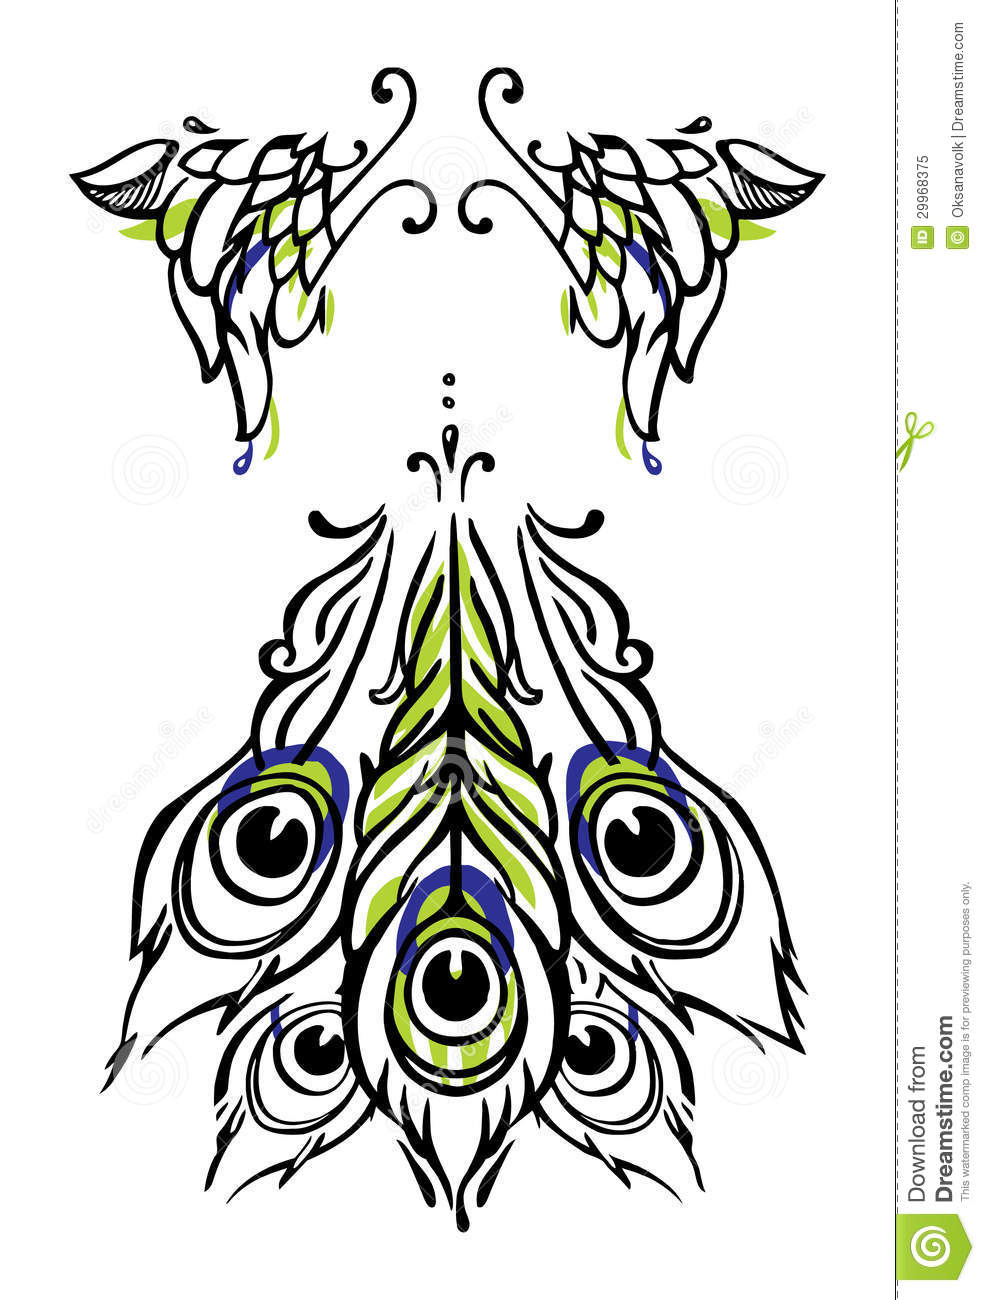 Tattoo Or Body Art Style Peacock Wings And Tail On White